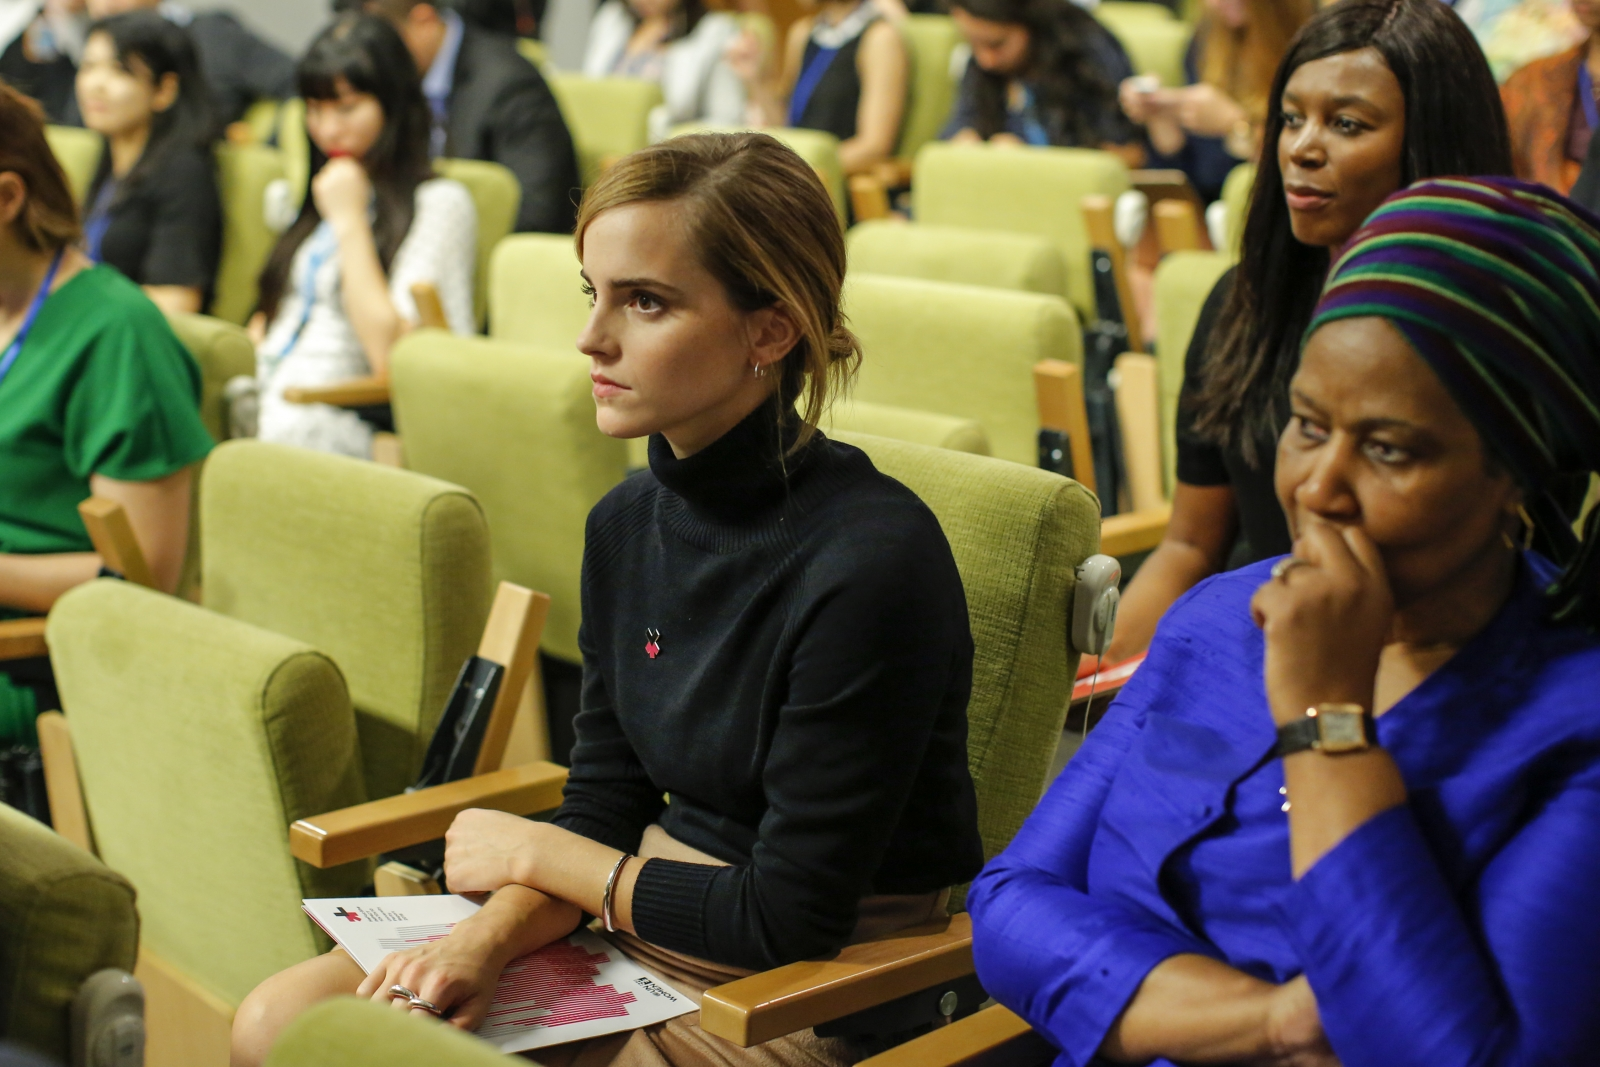 It's Emma Watson's feminist voice that offends people – not her breasts